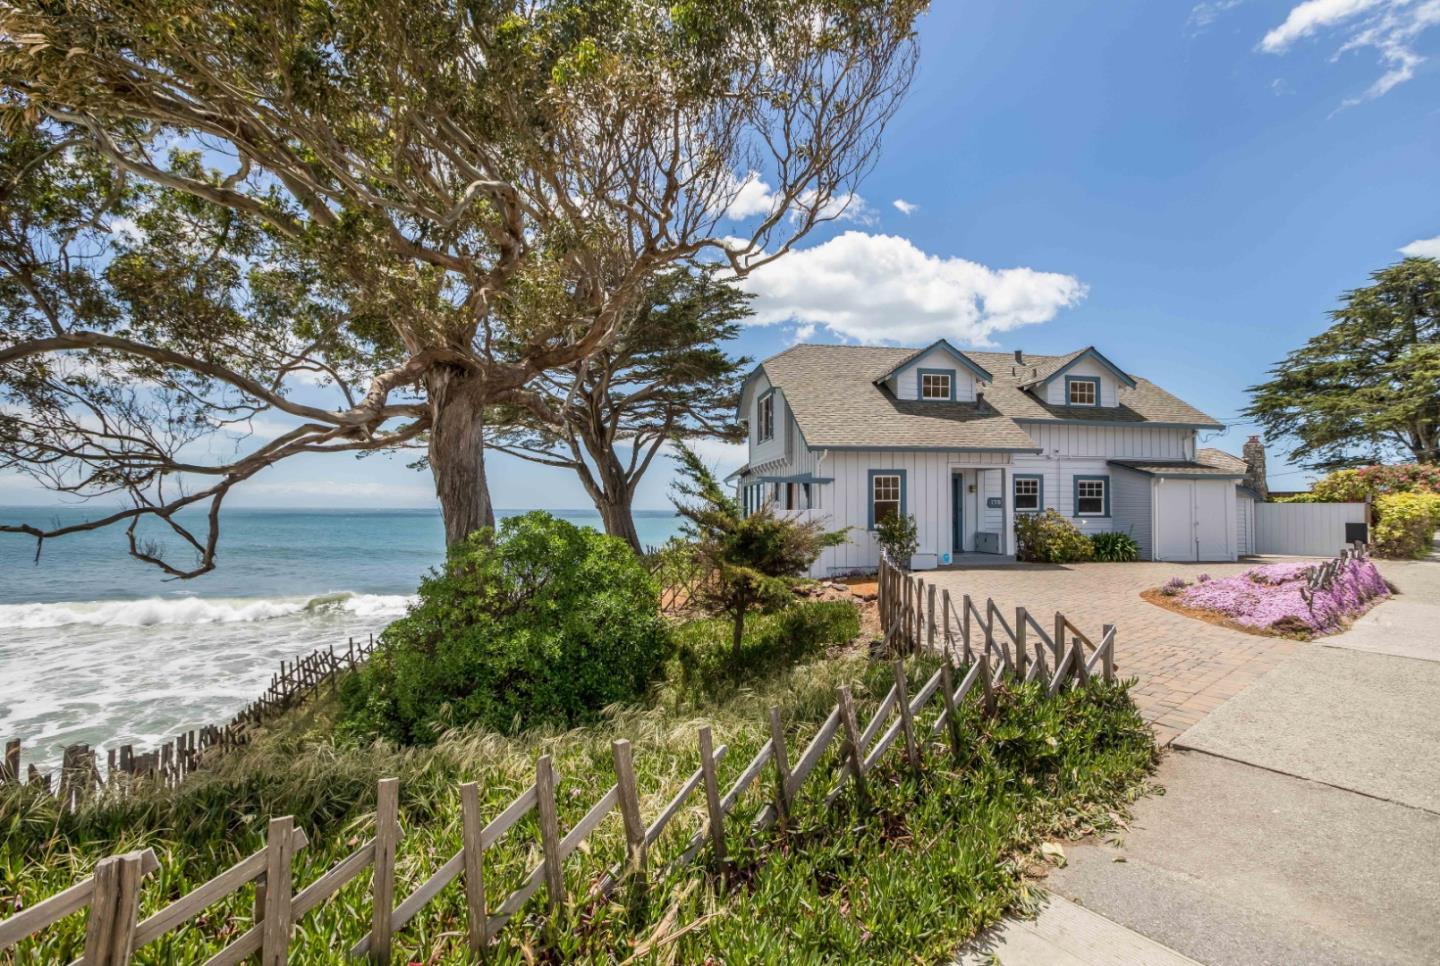 This iconic property is the only home on the ocean side of West Cliff Drive offering a feeling of privacy and seclusion.. This south-facing home offers rare opportunities to experience sunrise and sunset while the ocean crashes at your feet. The nearly half acre lot yields a multitude of small beaches, coves, tidal pools and is adjacent to Getchell's surf break. Conveniently located within walking distance to Boardwalk, Wilder Ranch,and trendy restaurants.  The main residence with its Big Sur like charm has 4 bedrooms and two full baths,combined with the guest studio to accommodate many visitors while the living and social areas of the home are well-suited for entertaining or a serene, private experience. A continuous theme of coastal views is reinforced by the homes position on bluff, surrounded by water, and multiple windows in every room. The grounds of the property feature a private beach terrace with fire pit, outdoor shower and large yard where fantastic events can be hosted.